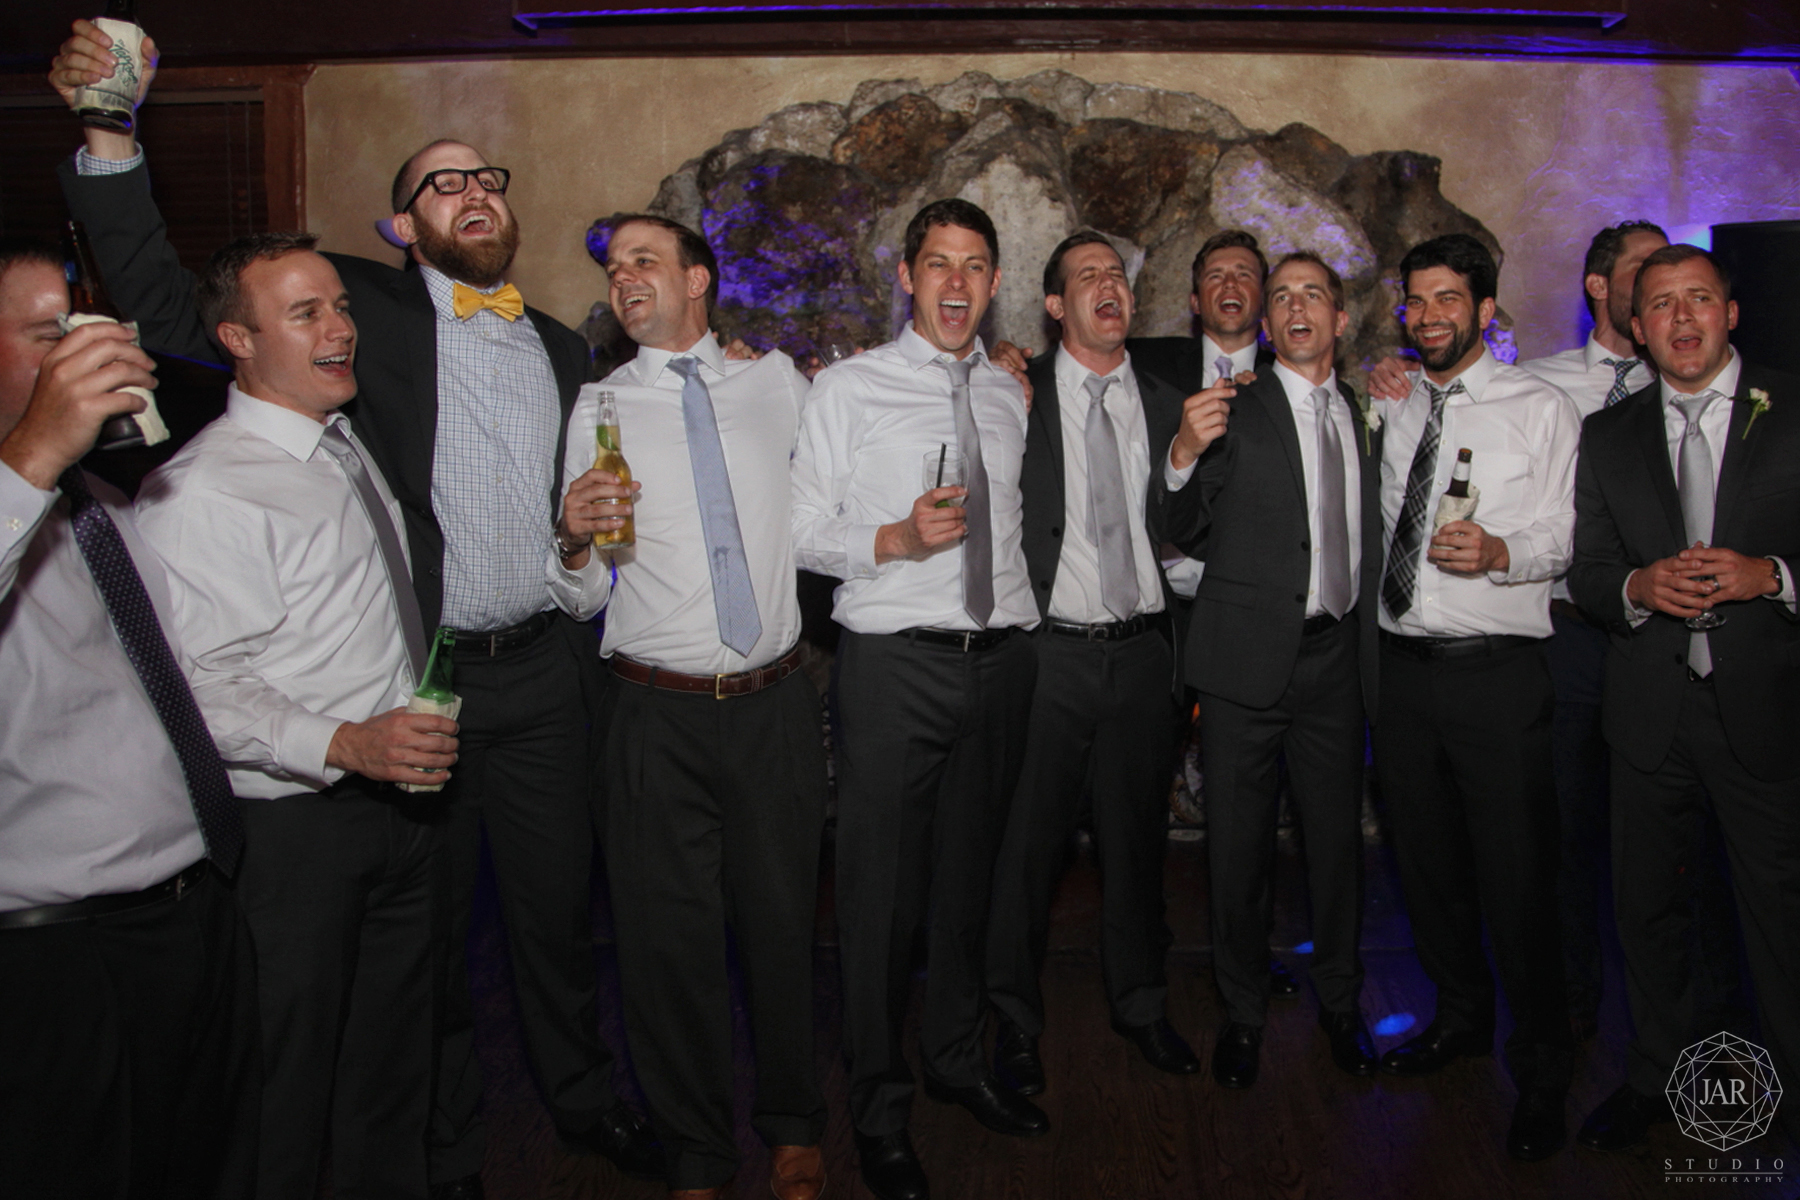 42-groom-groomsmen-guys-drinking-singing-best-reception-ever-jarstudio-photography.JPG